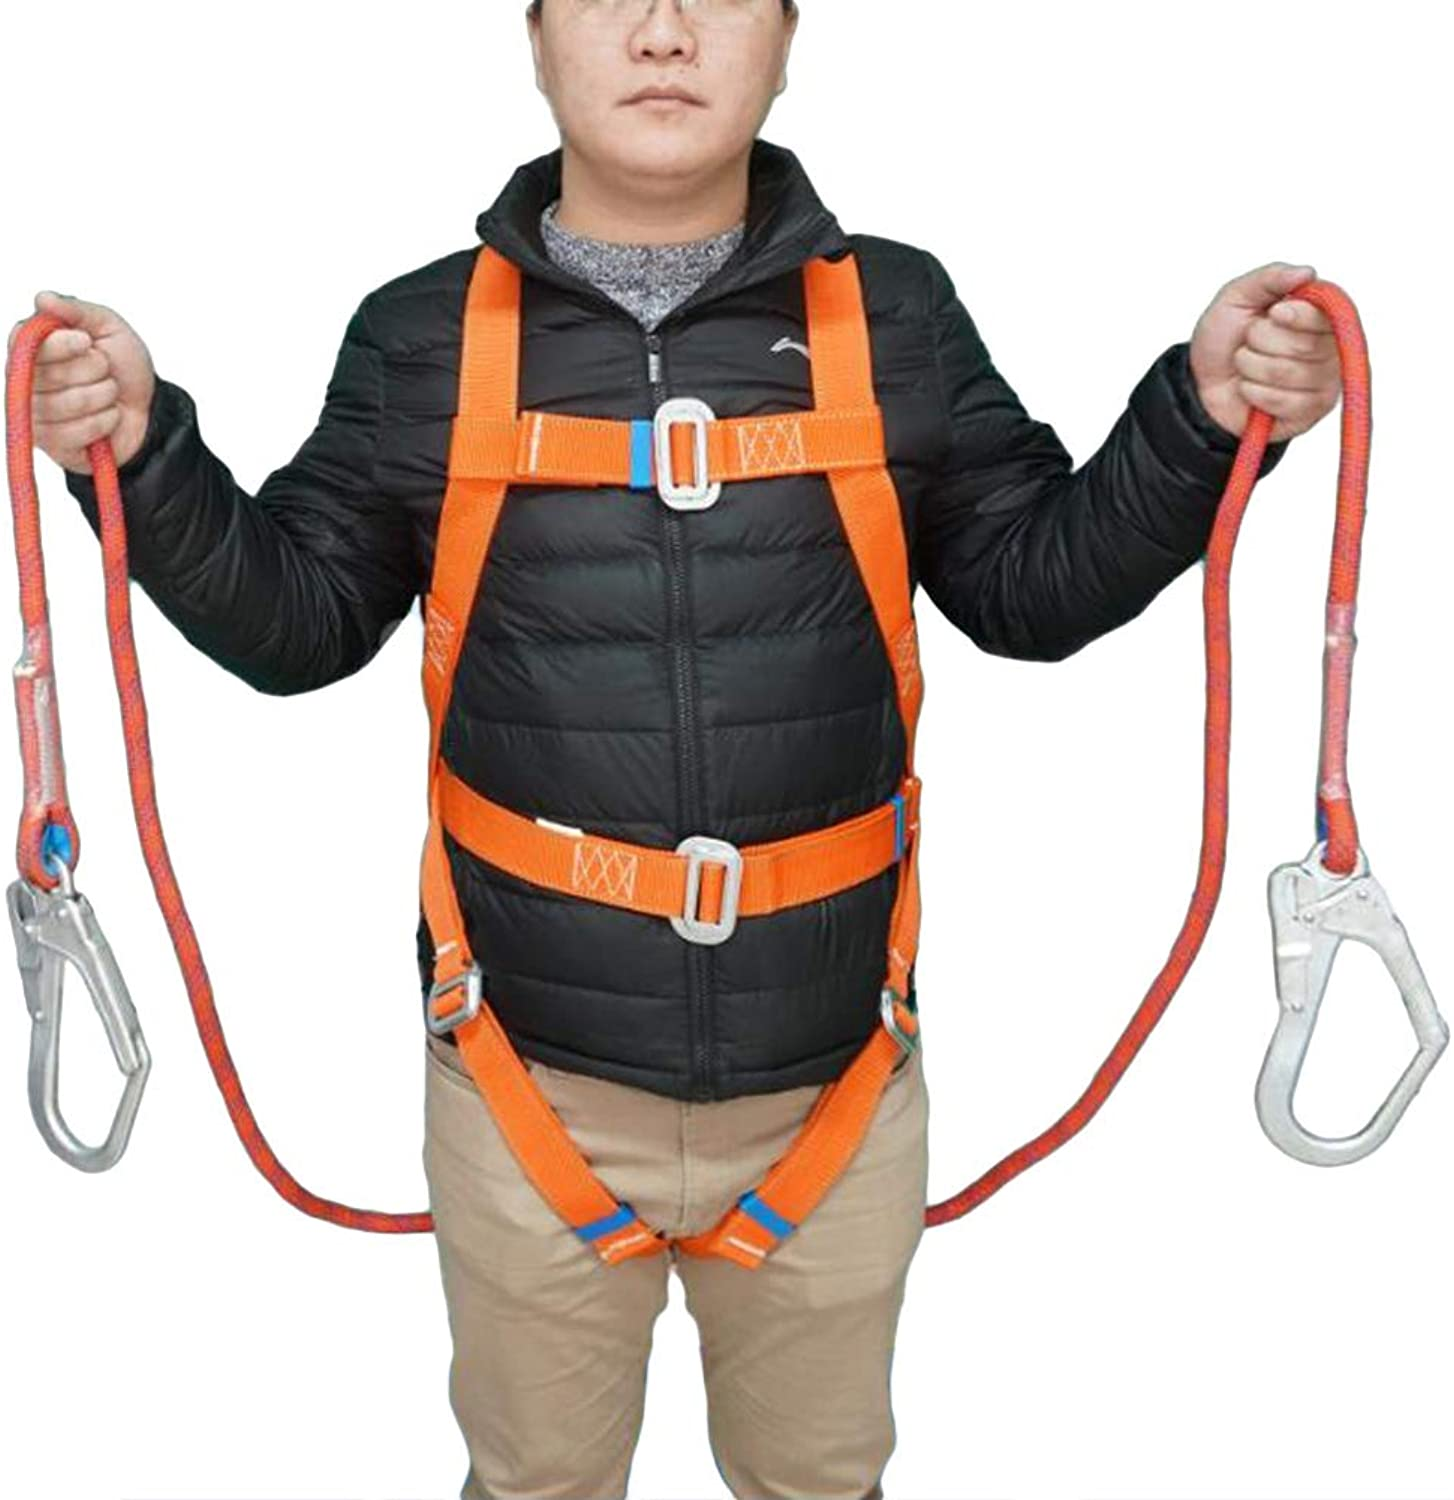 LIOOBO 1.8m High Altitude Operation Outdoor Safety Belt Safety Zone Suspenders Dual Rope Rock Climbing Safety Belt Anti Falling Predection Electrical Work Safety Belt with Cushion Bag (orange)